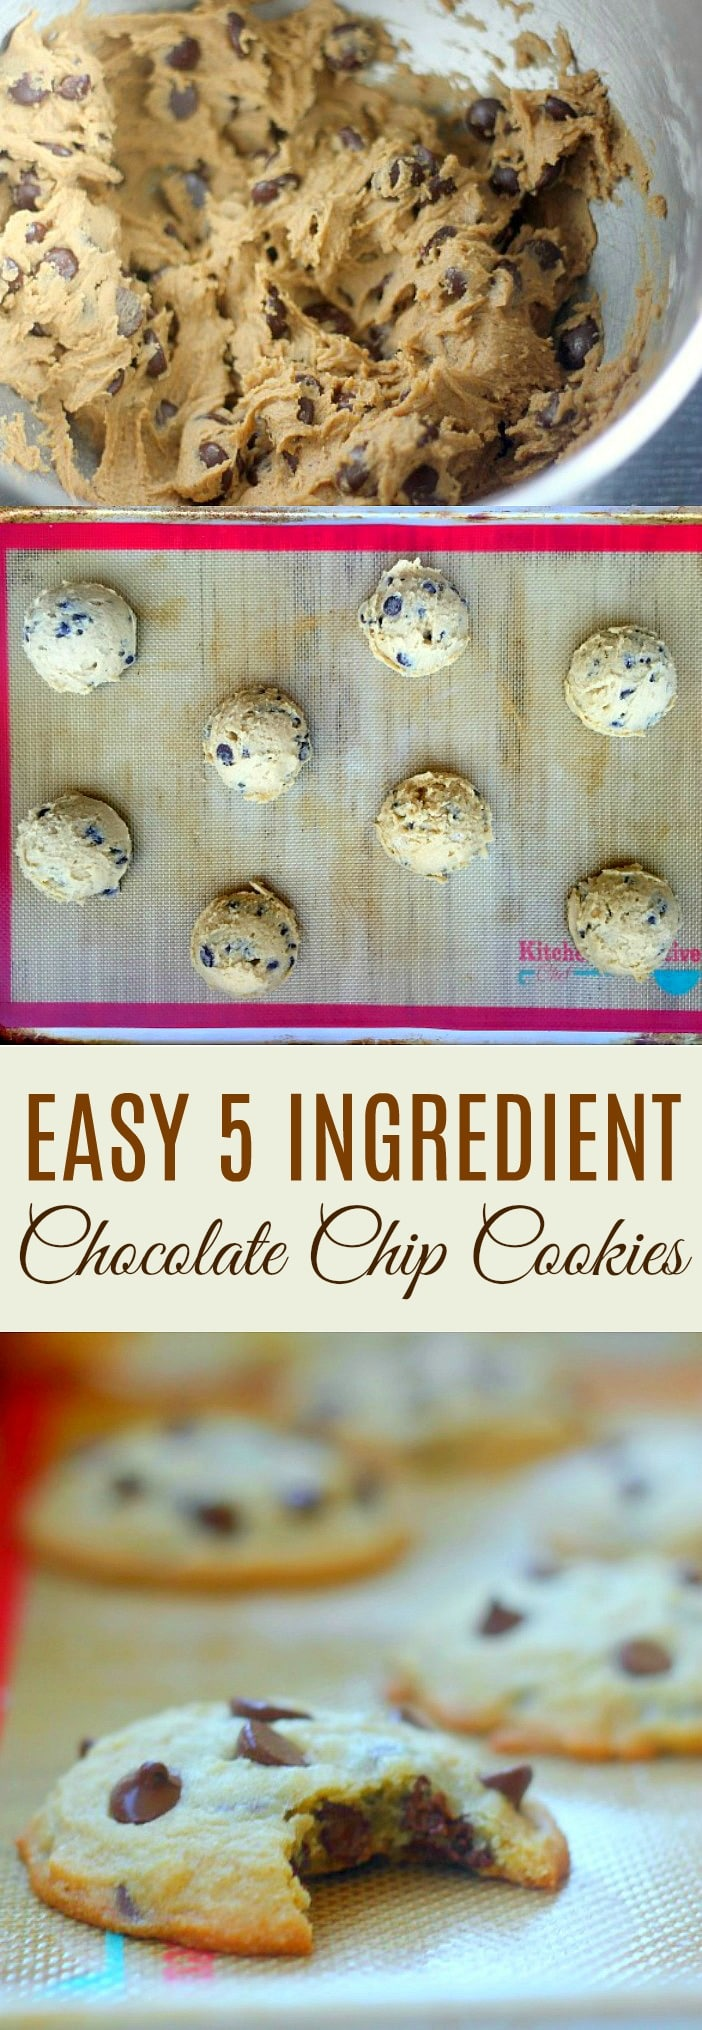 Easy 5 Ingredient Chocolate Chip Cookie Recipe